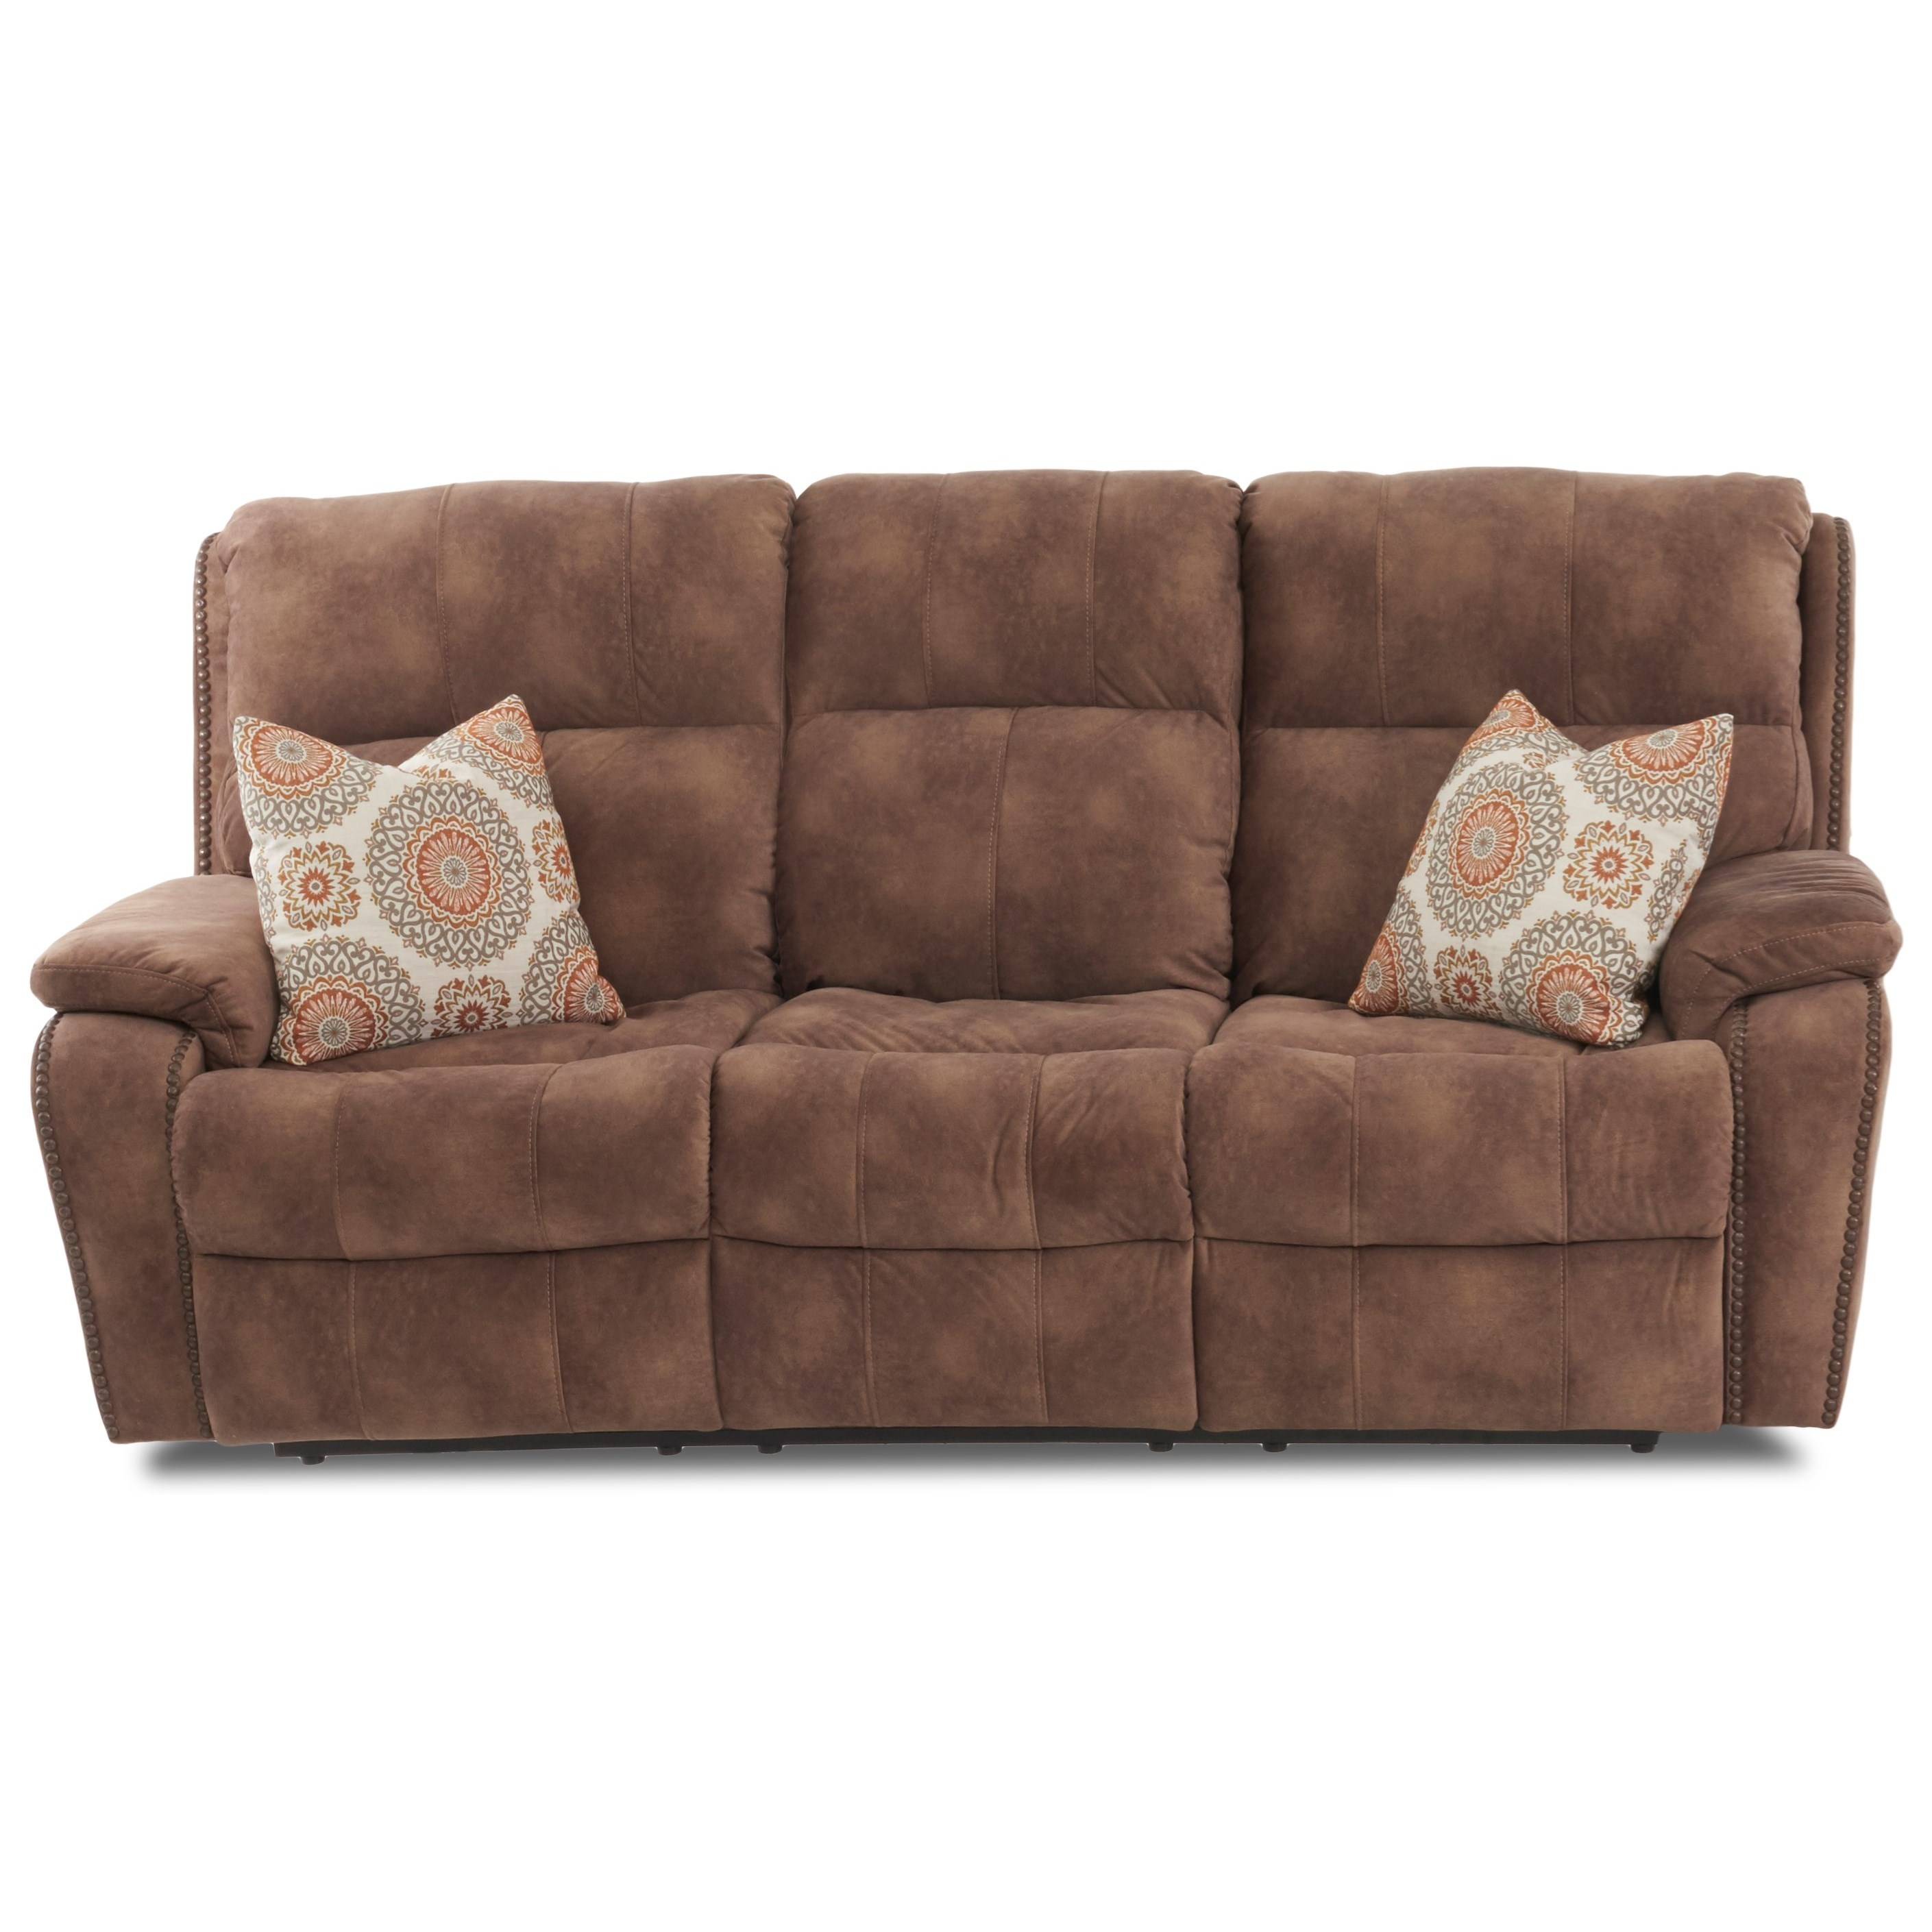 Averett Pwr Recline Sofa w/ Nails w/ Pwr Head w/ Pil by Klaussner at Northeast Factory Direct